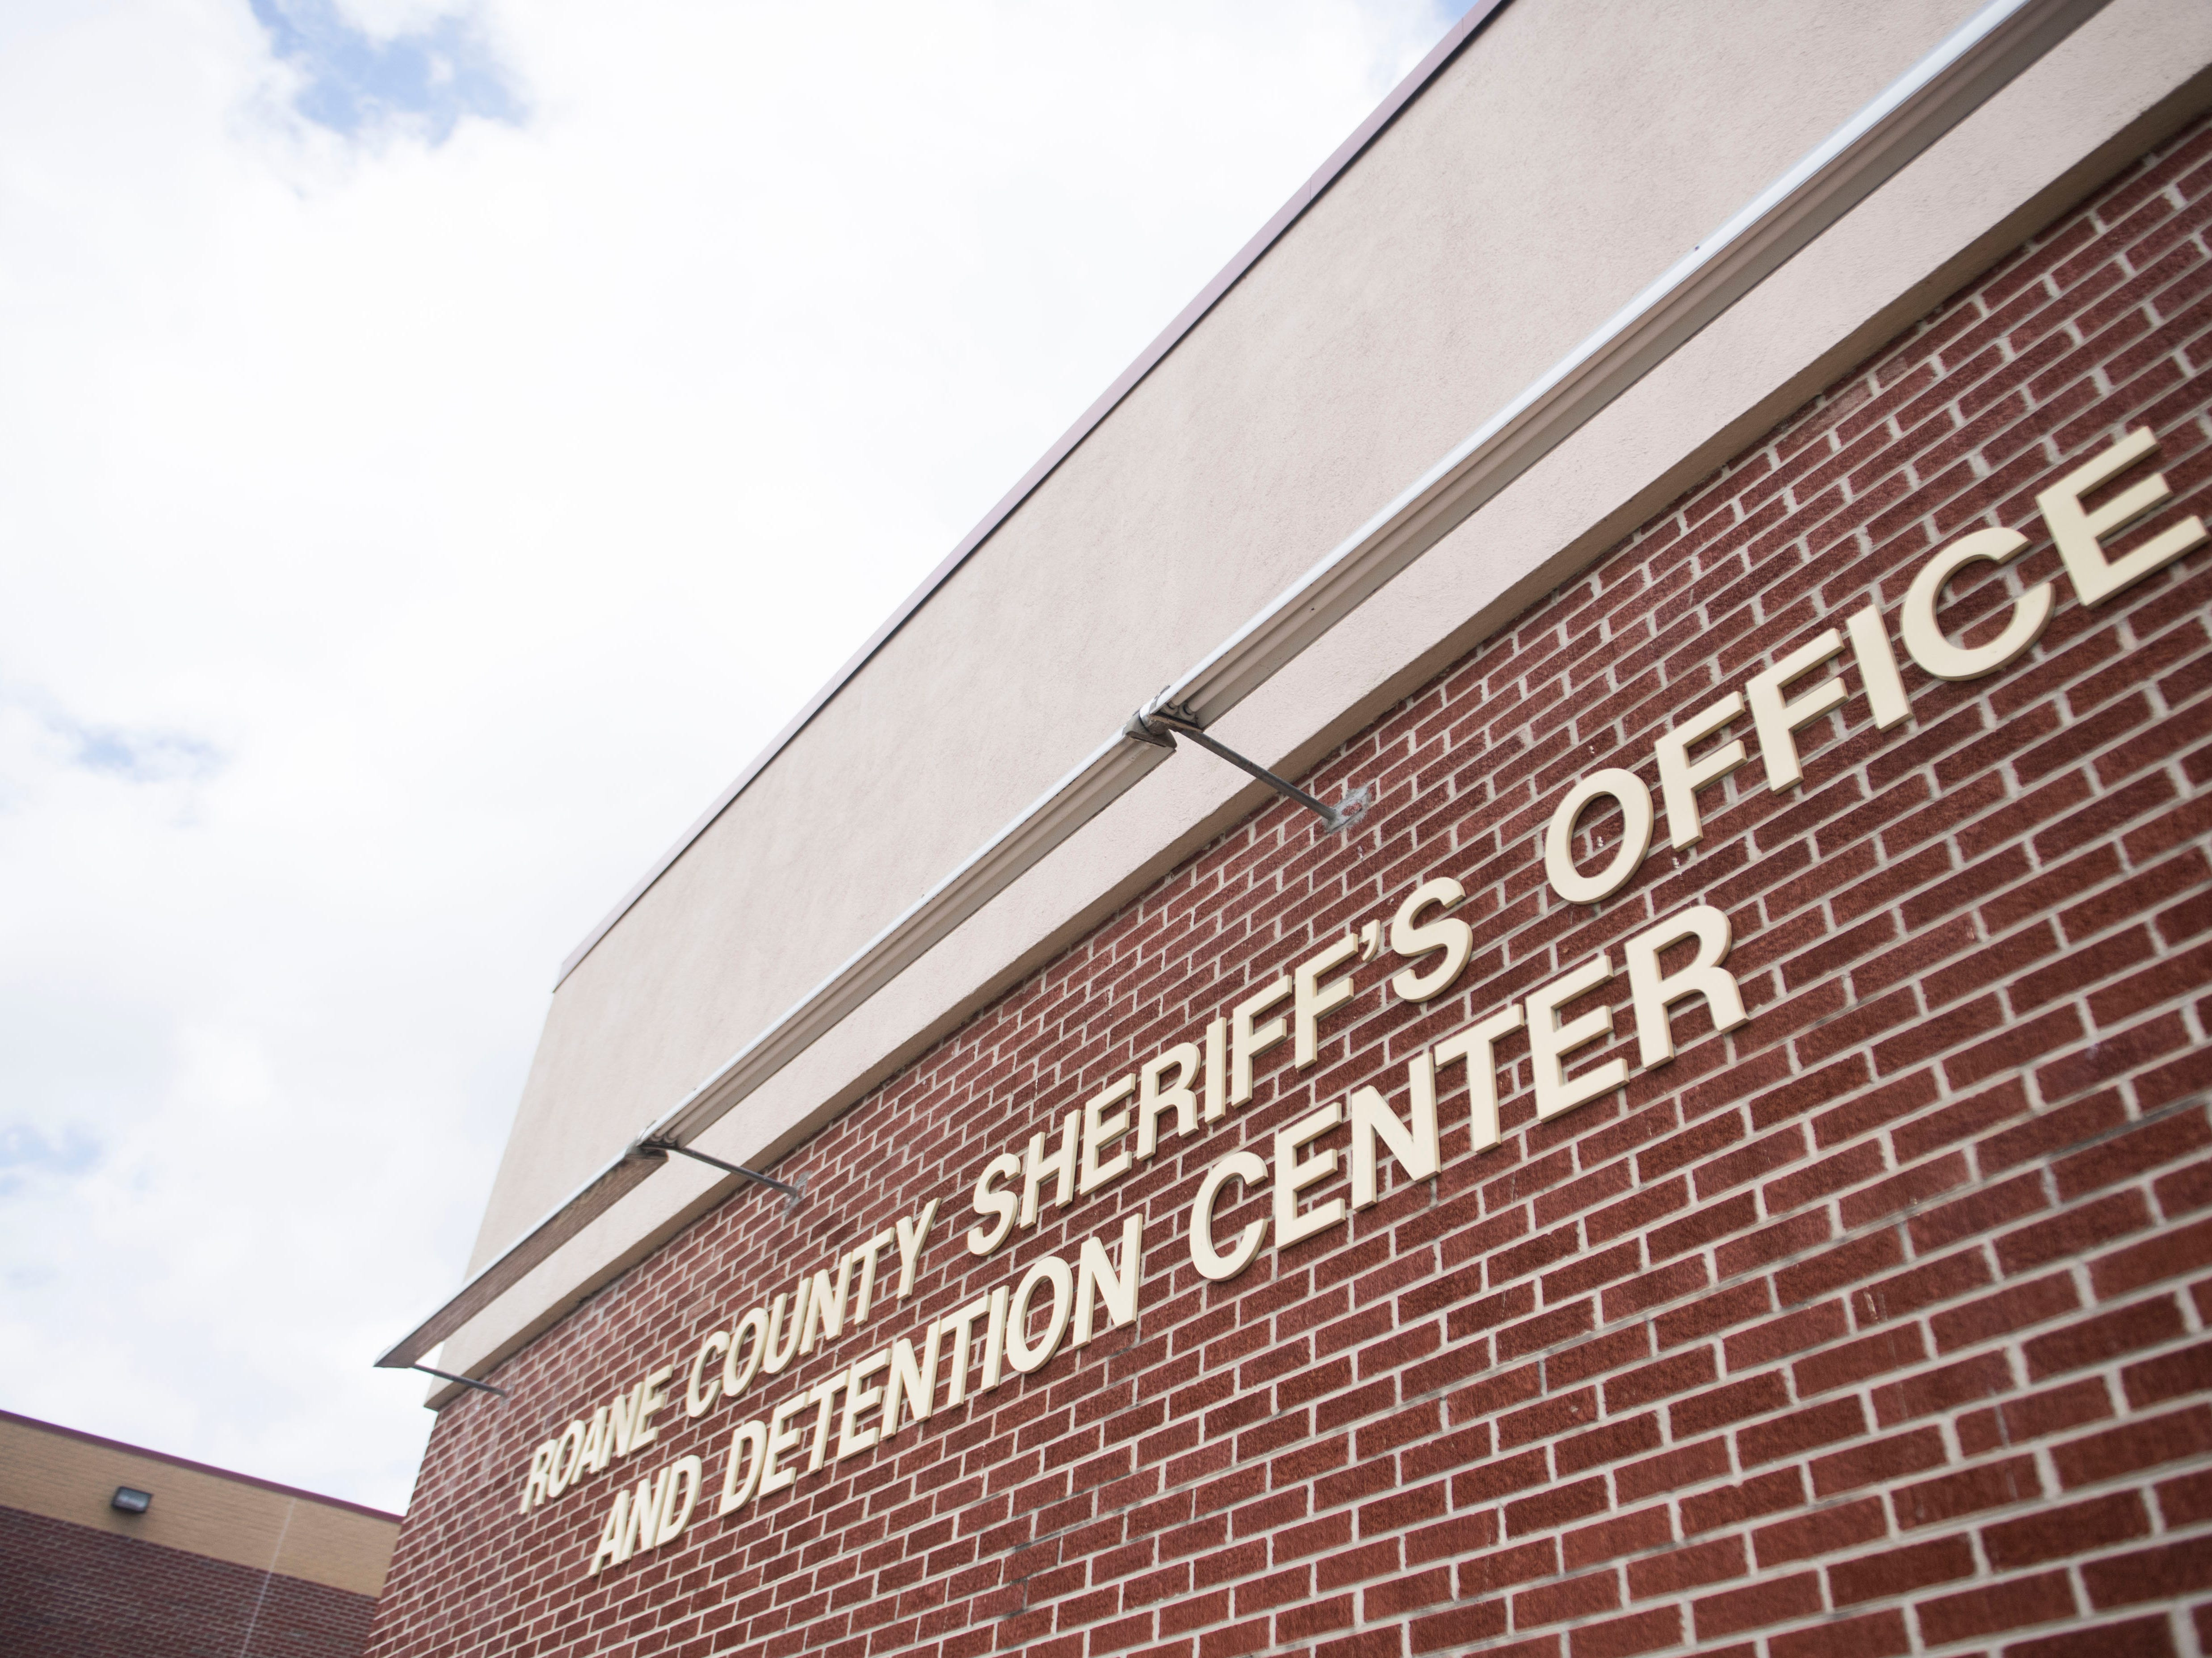 The Roane County Sheriff's Office and Detention Center Wednesday, May 30, 2018.